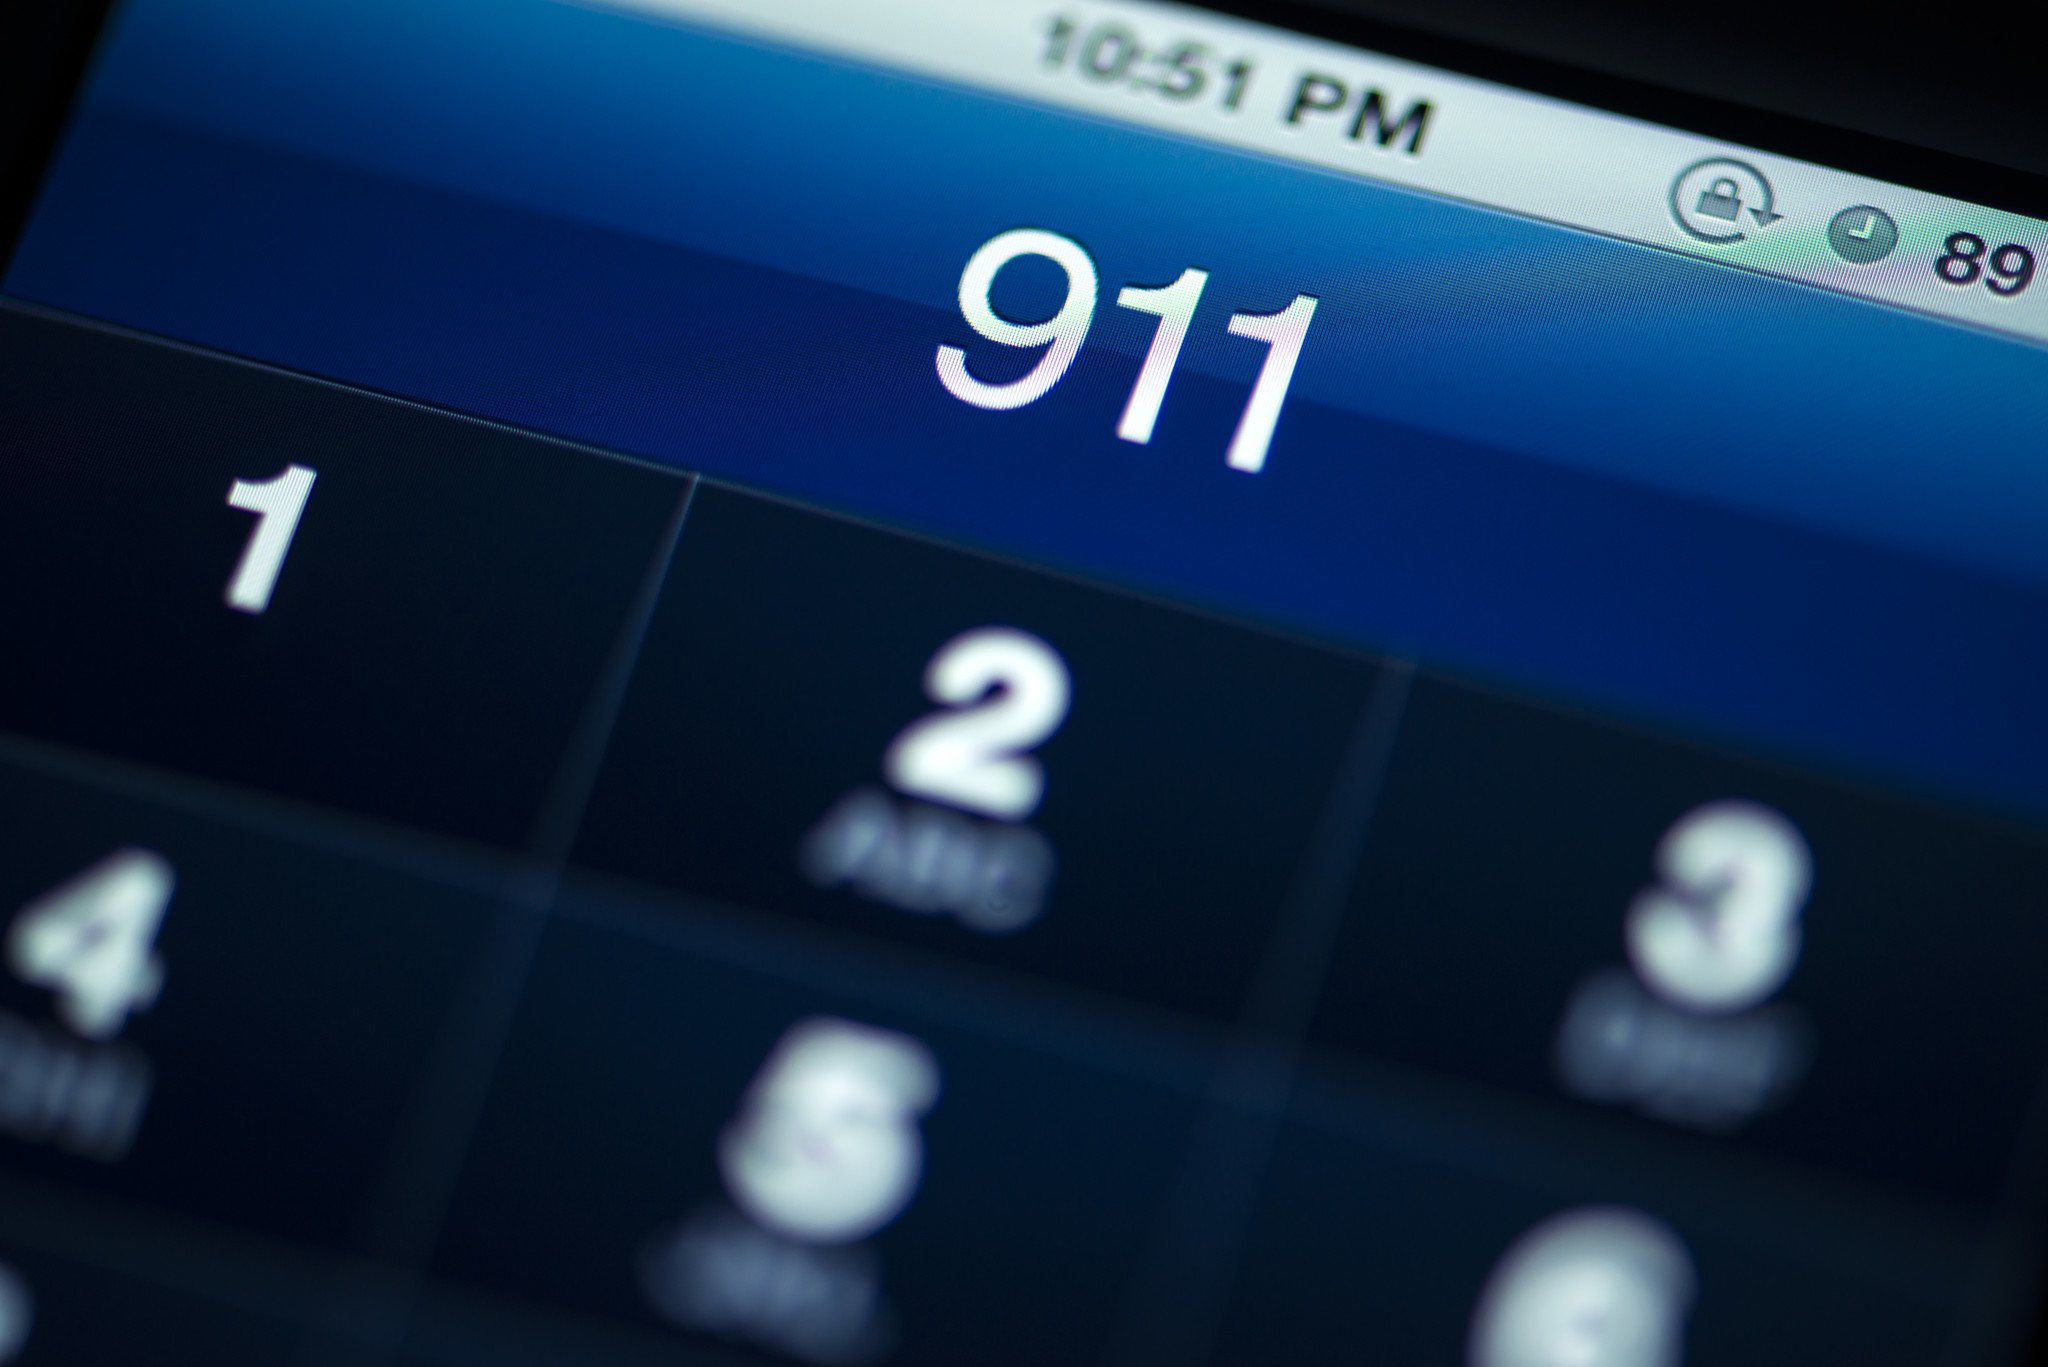 Ohio 911 dispatcher suspended after refusing to send ambulance to stroke victim